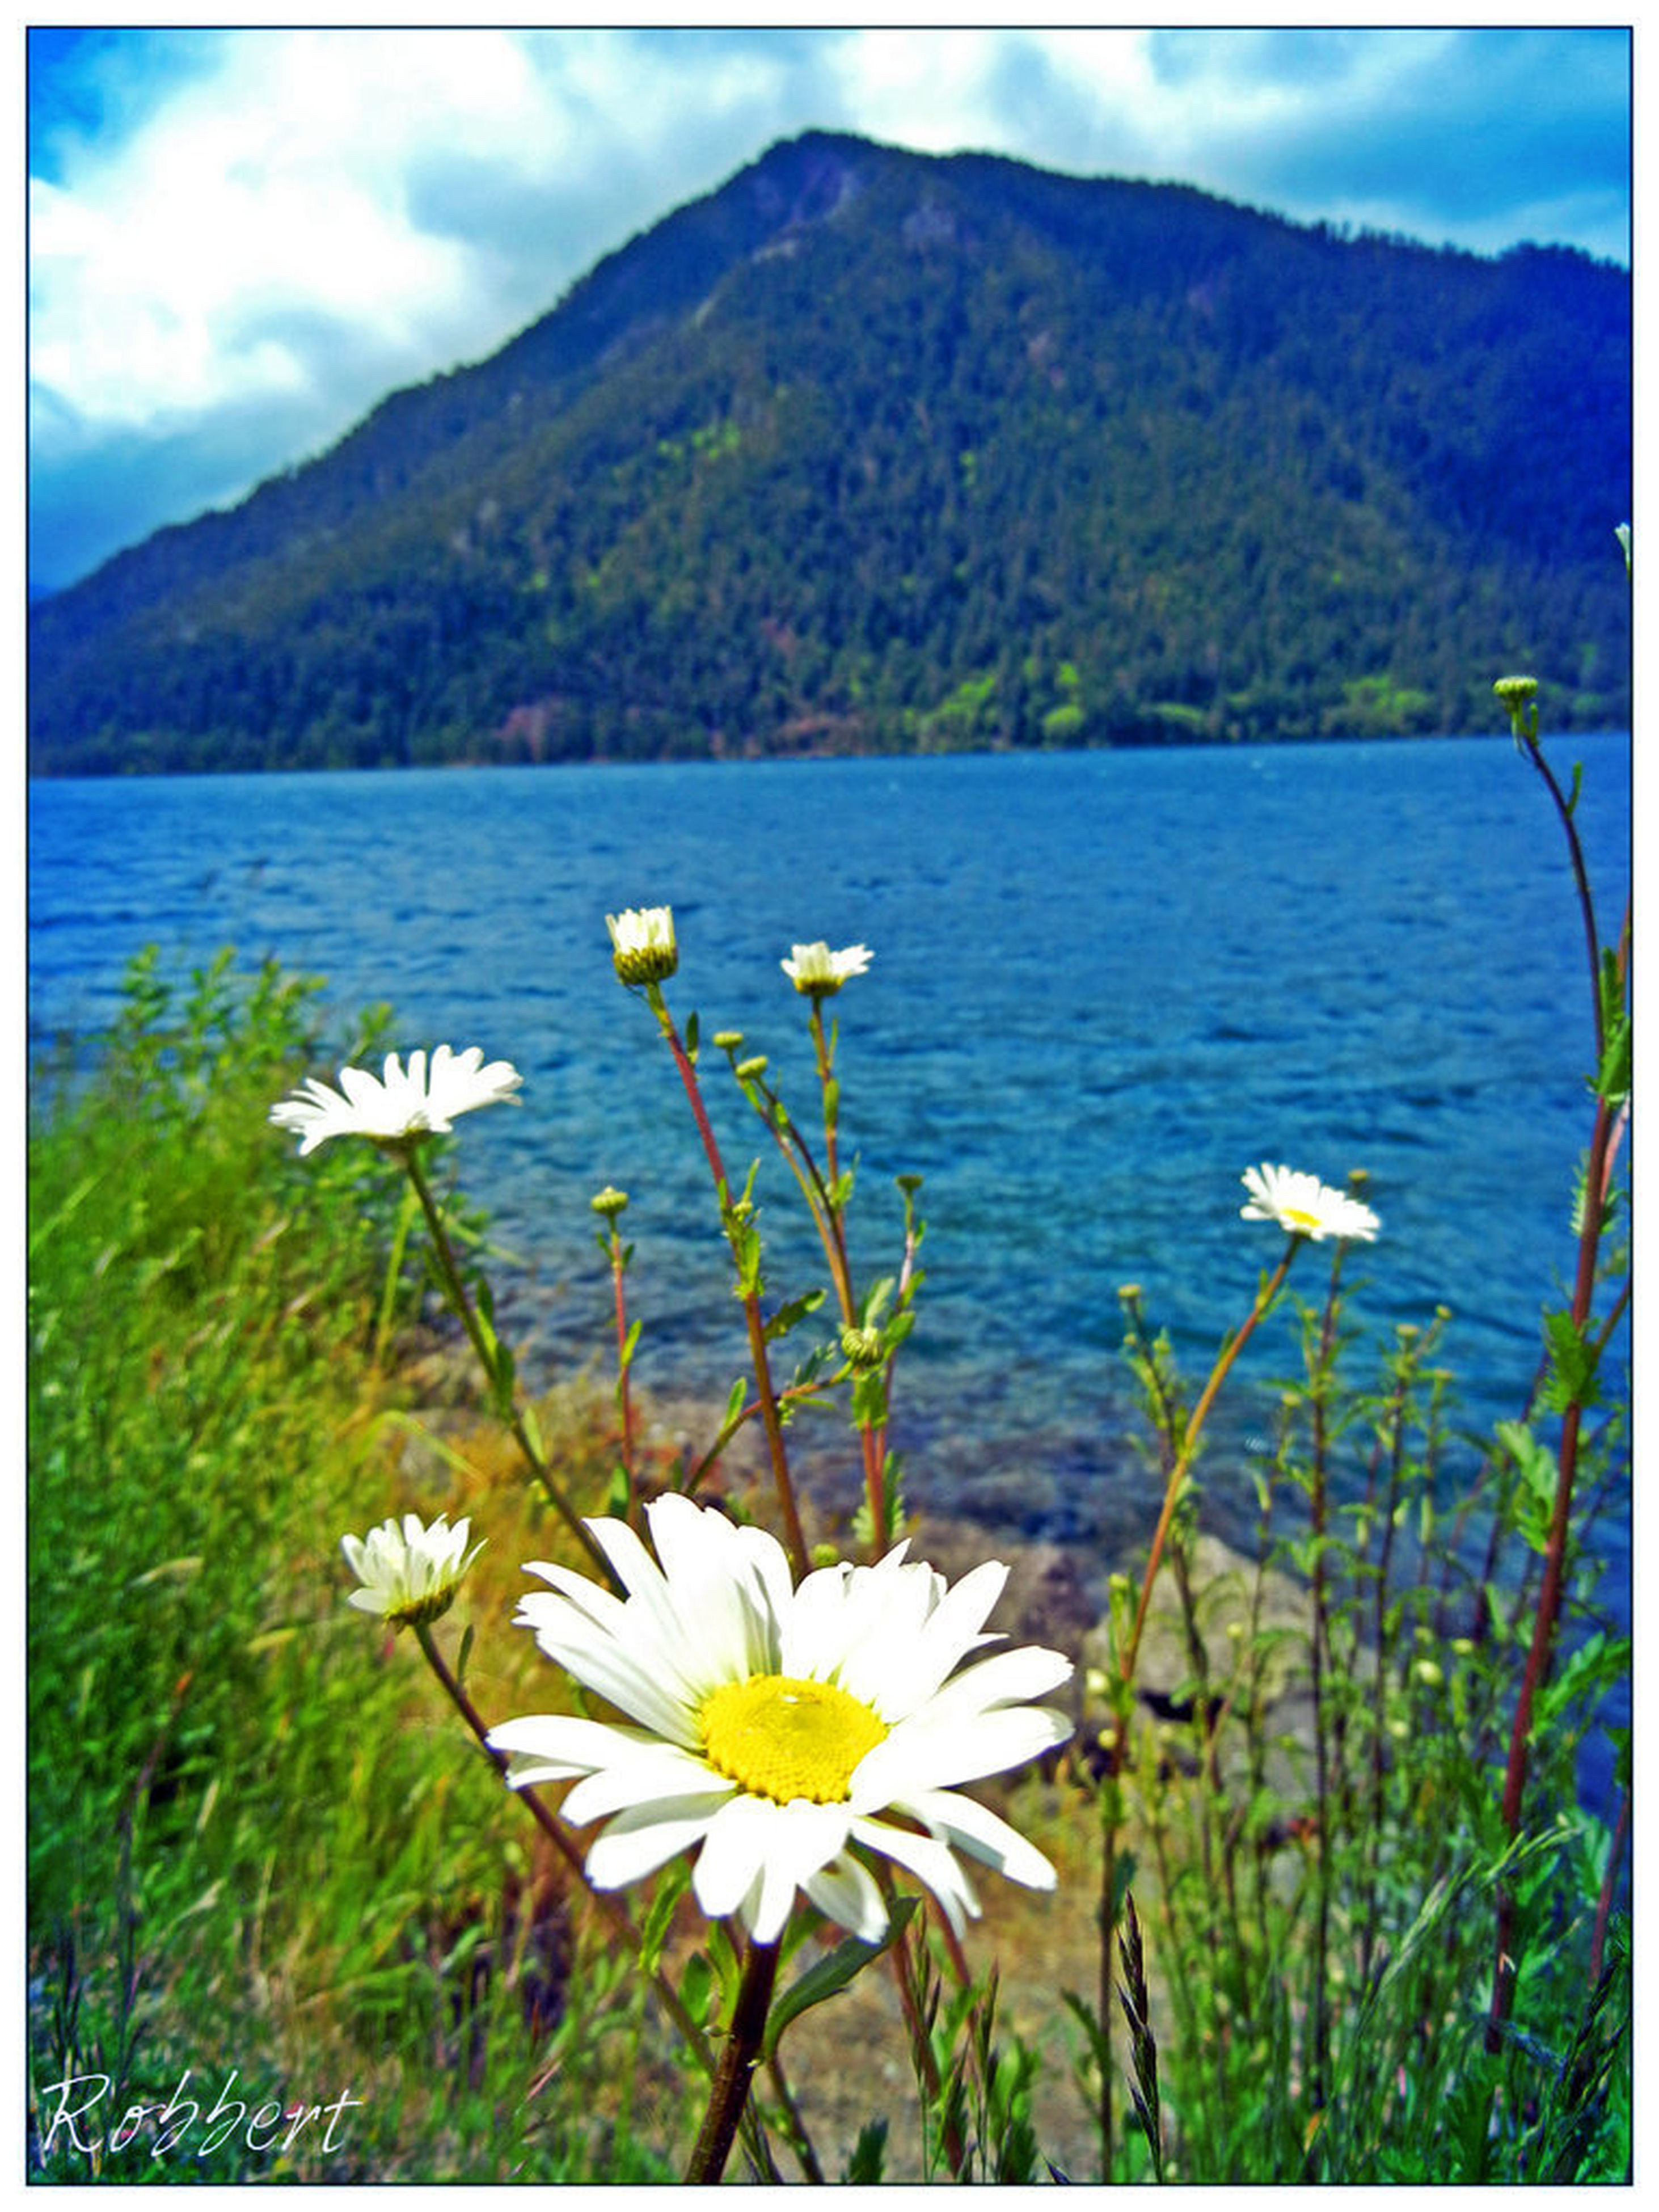 flower, beauty in nature, water, lake, mountain, growth, tranquil scene, nature, plant, transfer print, freshness, tranquility, scenics, white color, fragility, blooming, petal, mountain range, wildflower, sky